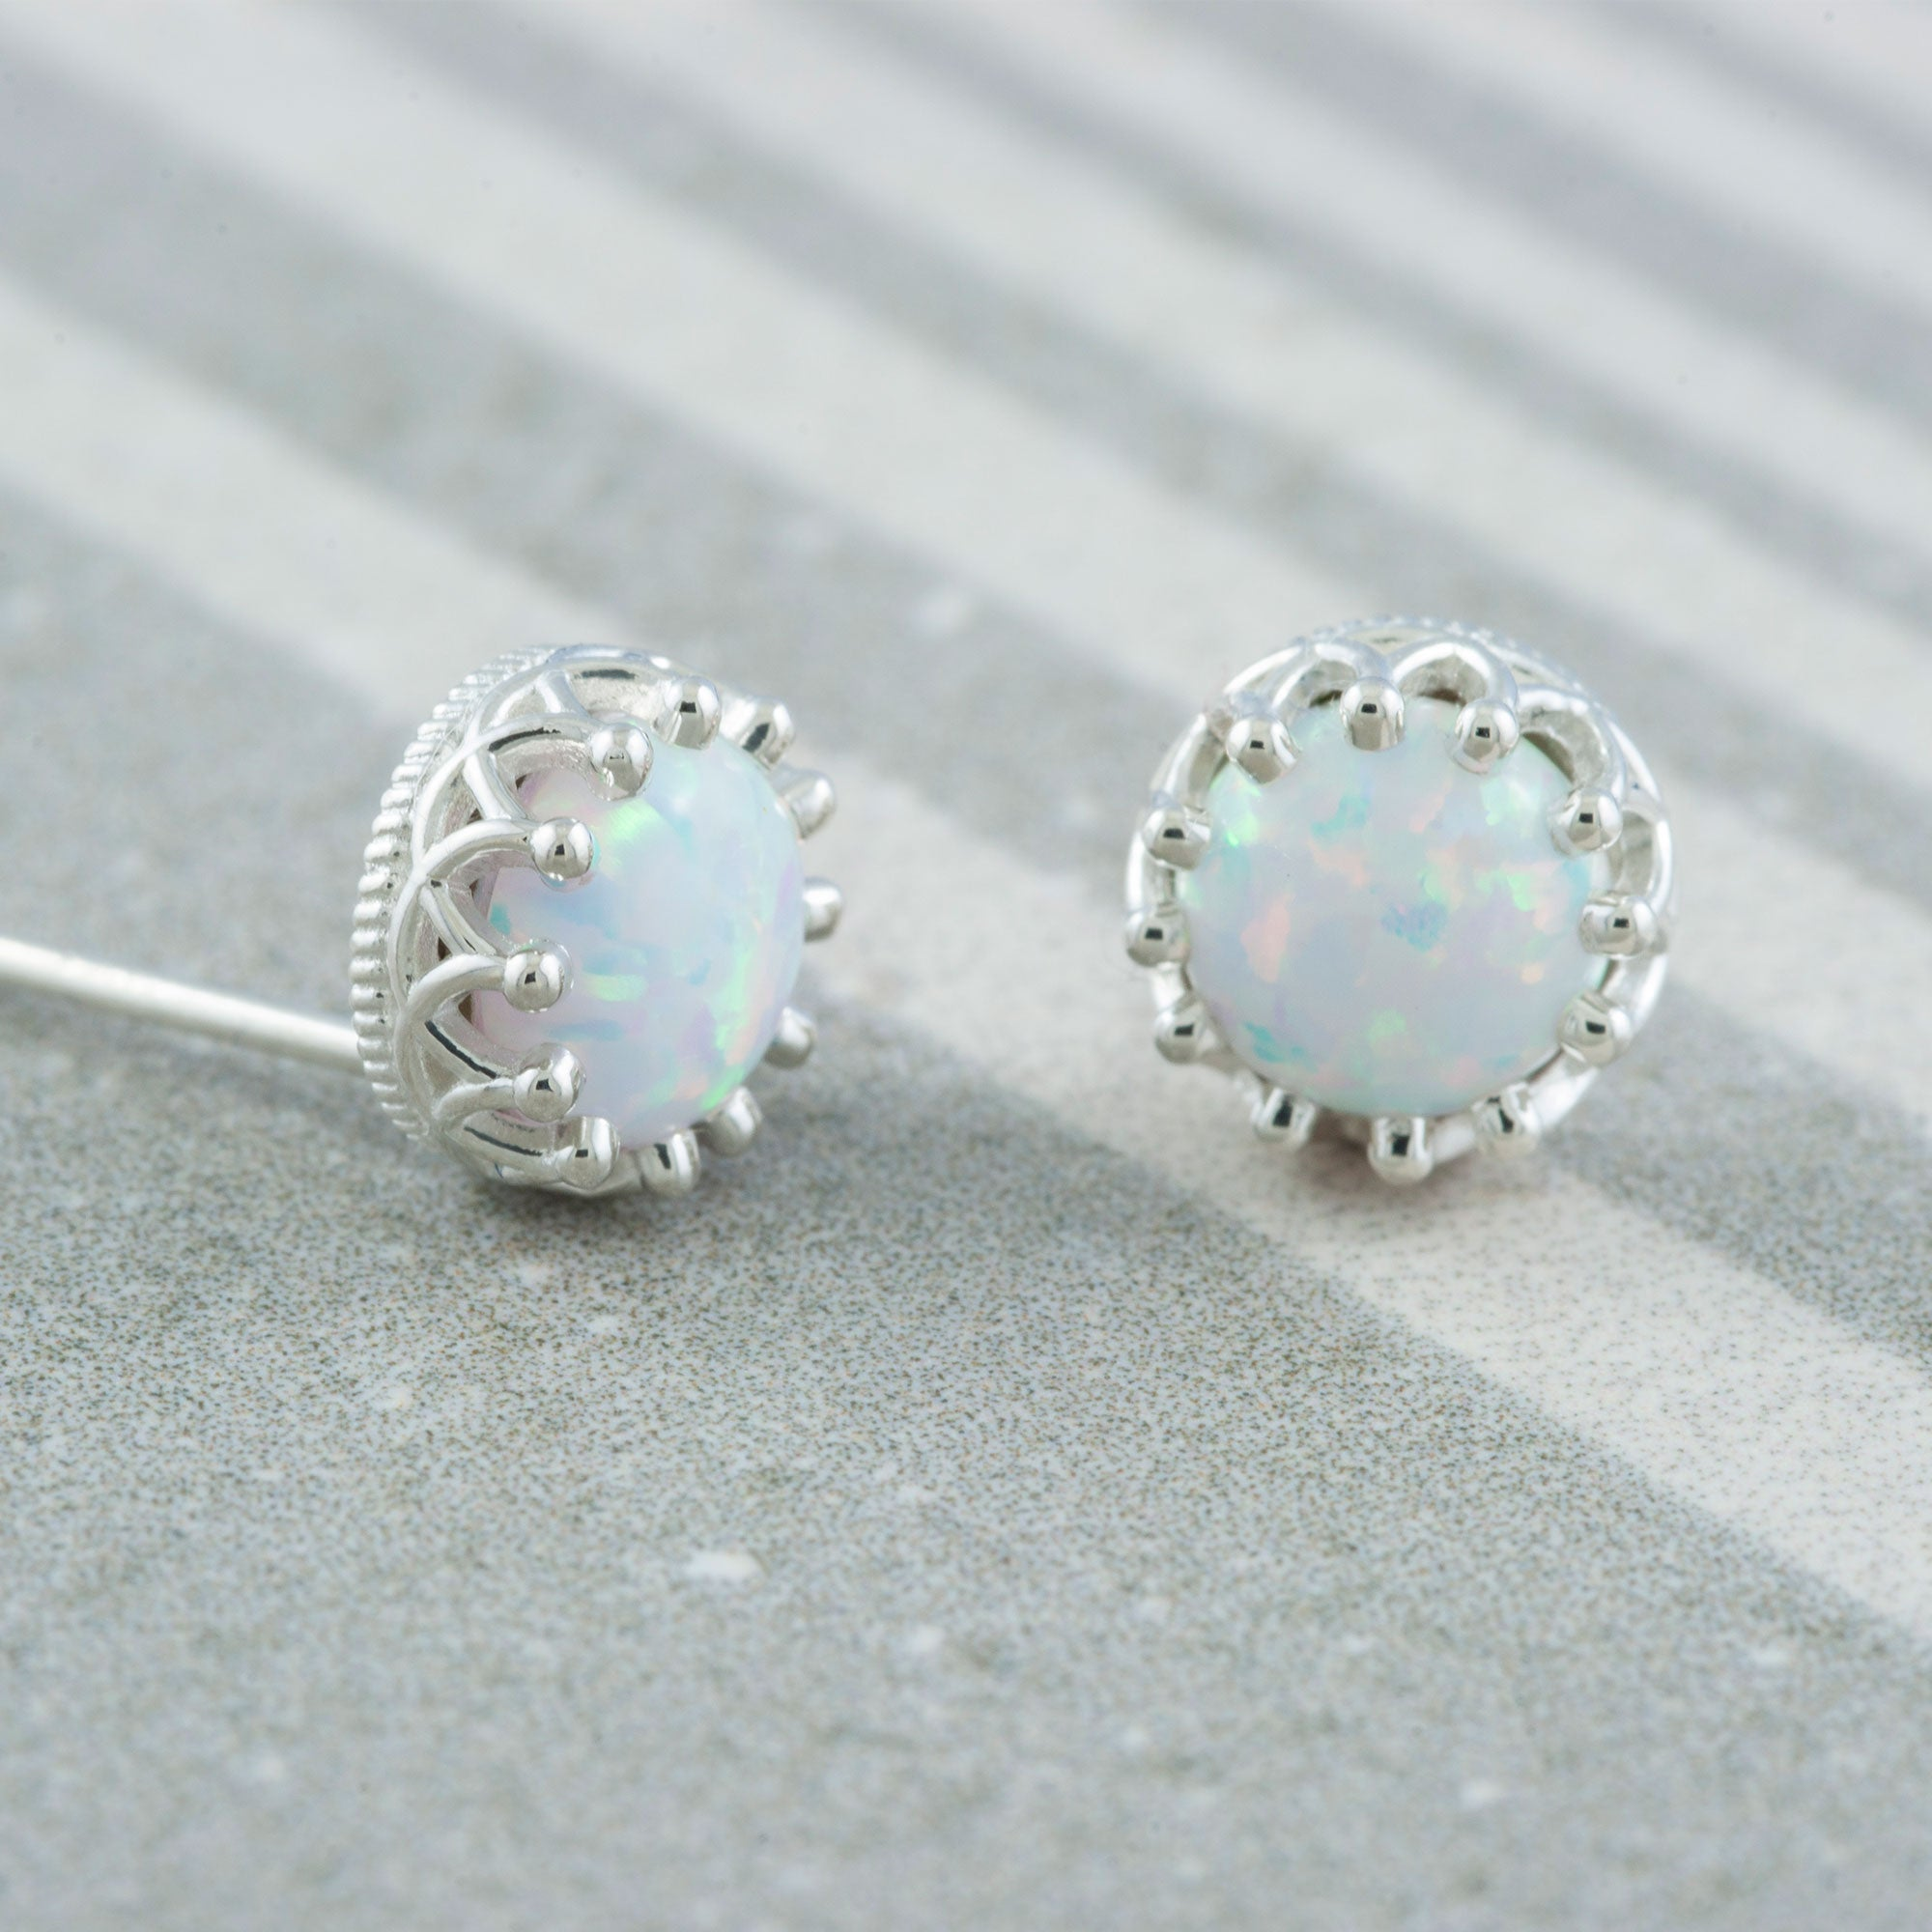 Sterling Silver Opal Stud Earrings | Era Design Vancouver Canada